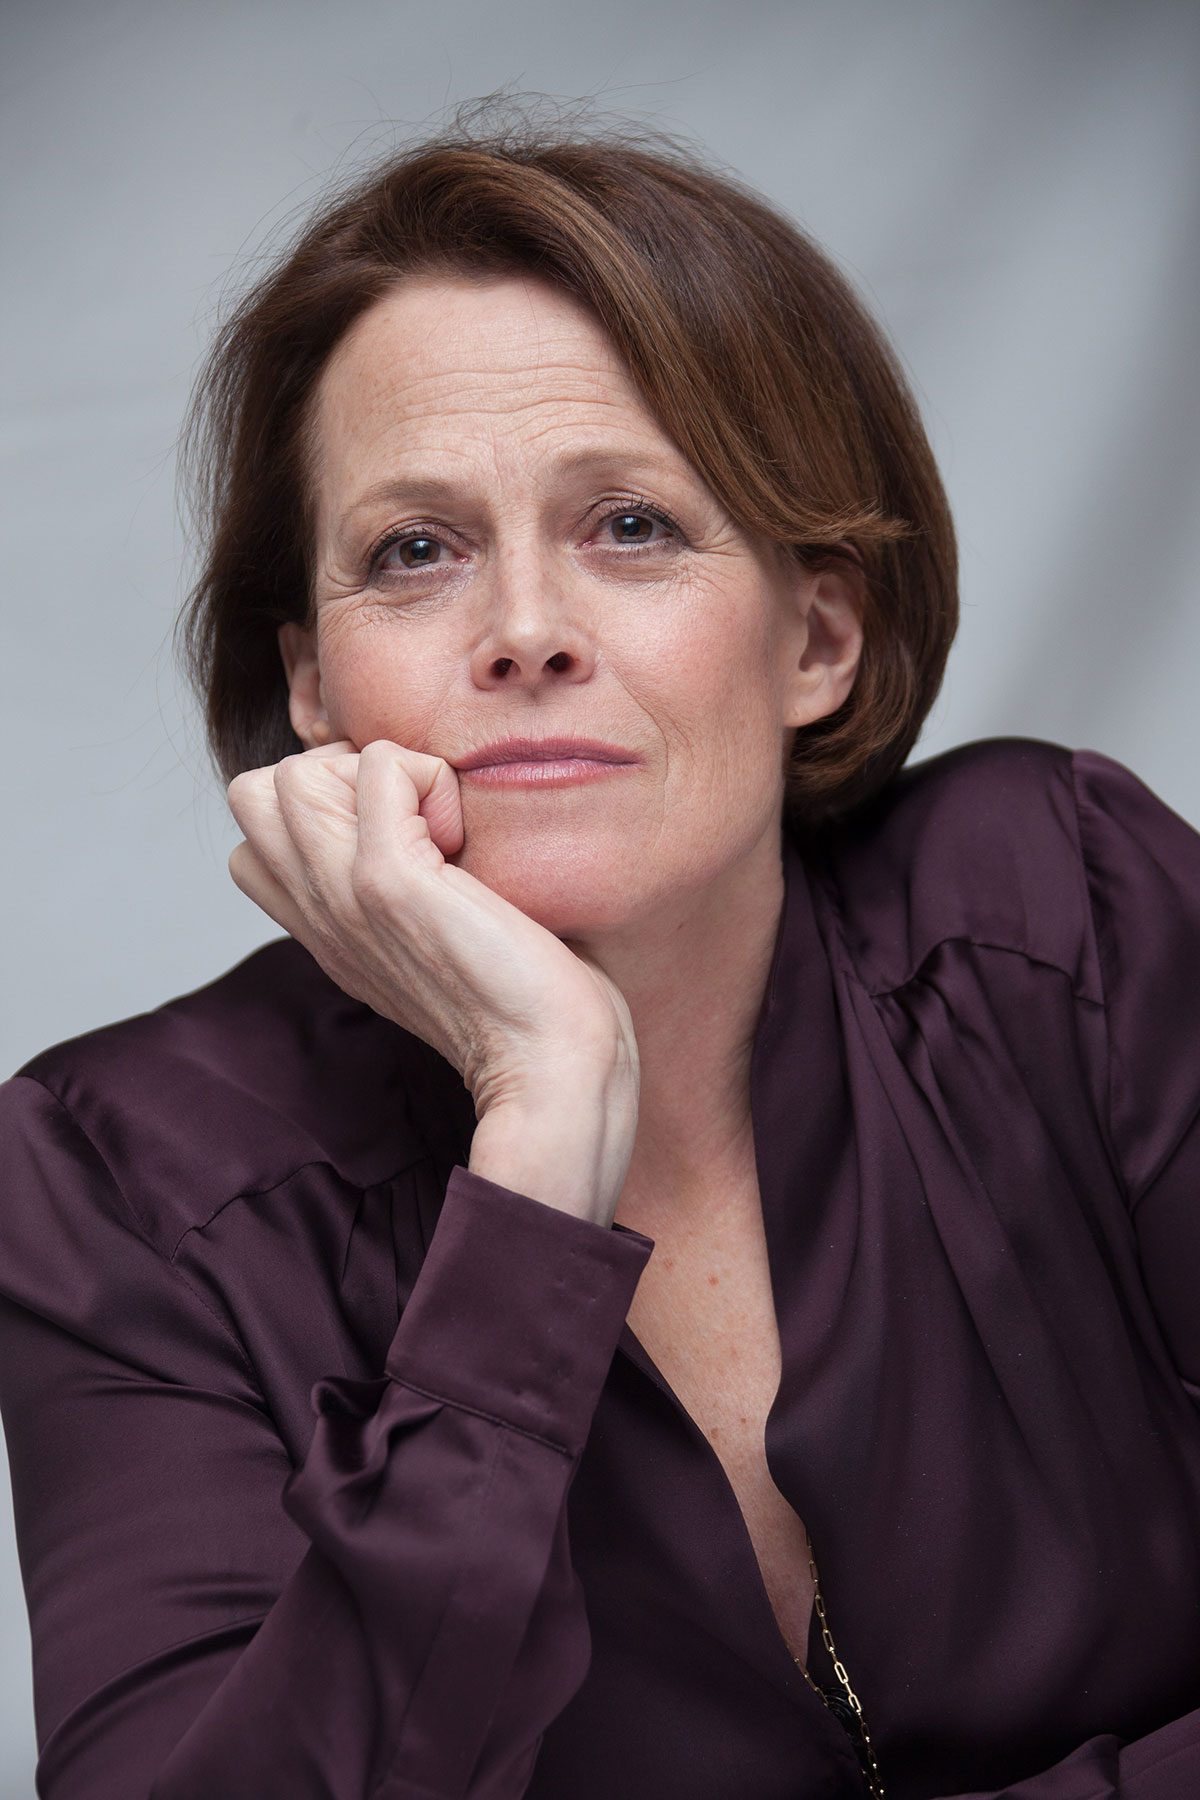 Sigourney Weaver Filmography And Biography On Movies Film: Chappie Press Conference Portraits By